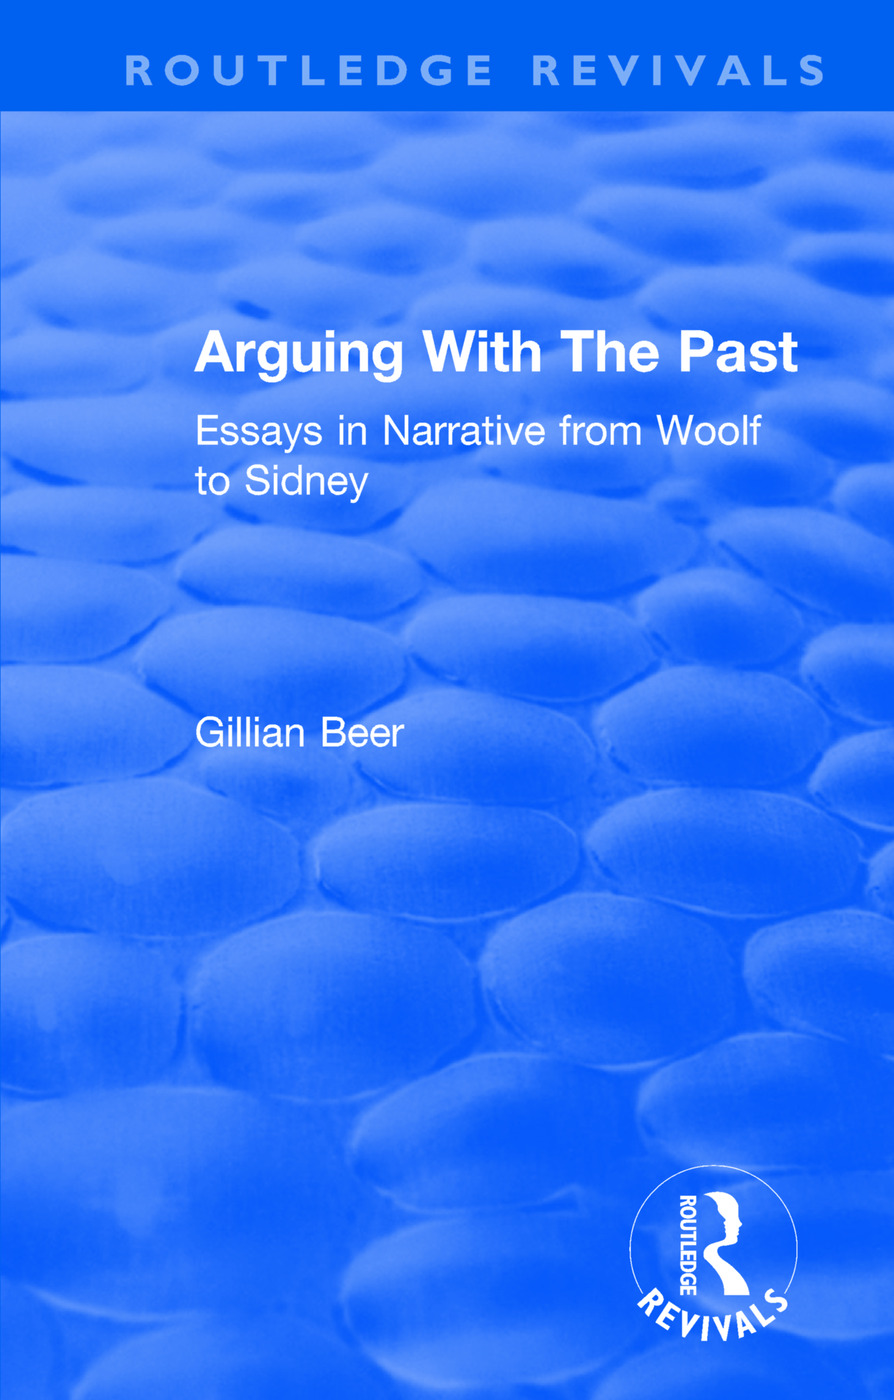 Routledge Revivals: Arguing With The Past (1989): Essays in Narrative from Woolf to Sidney book cover